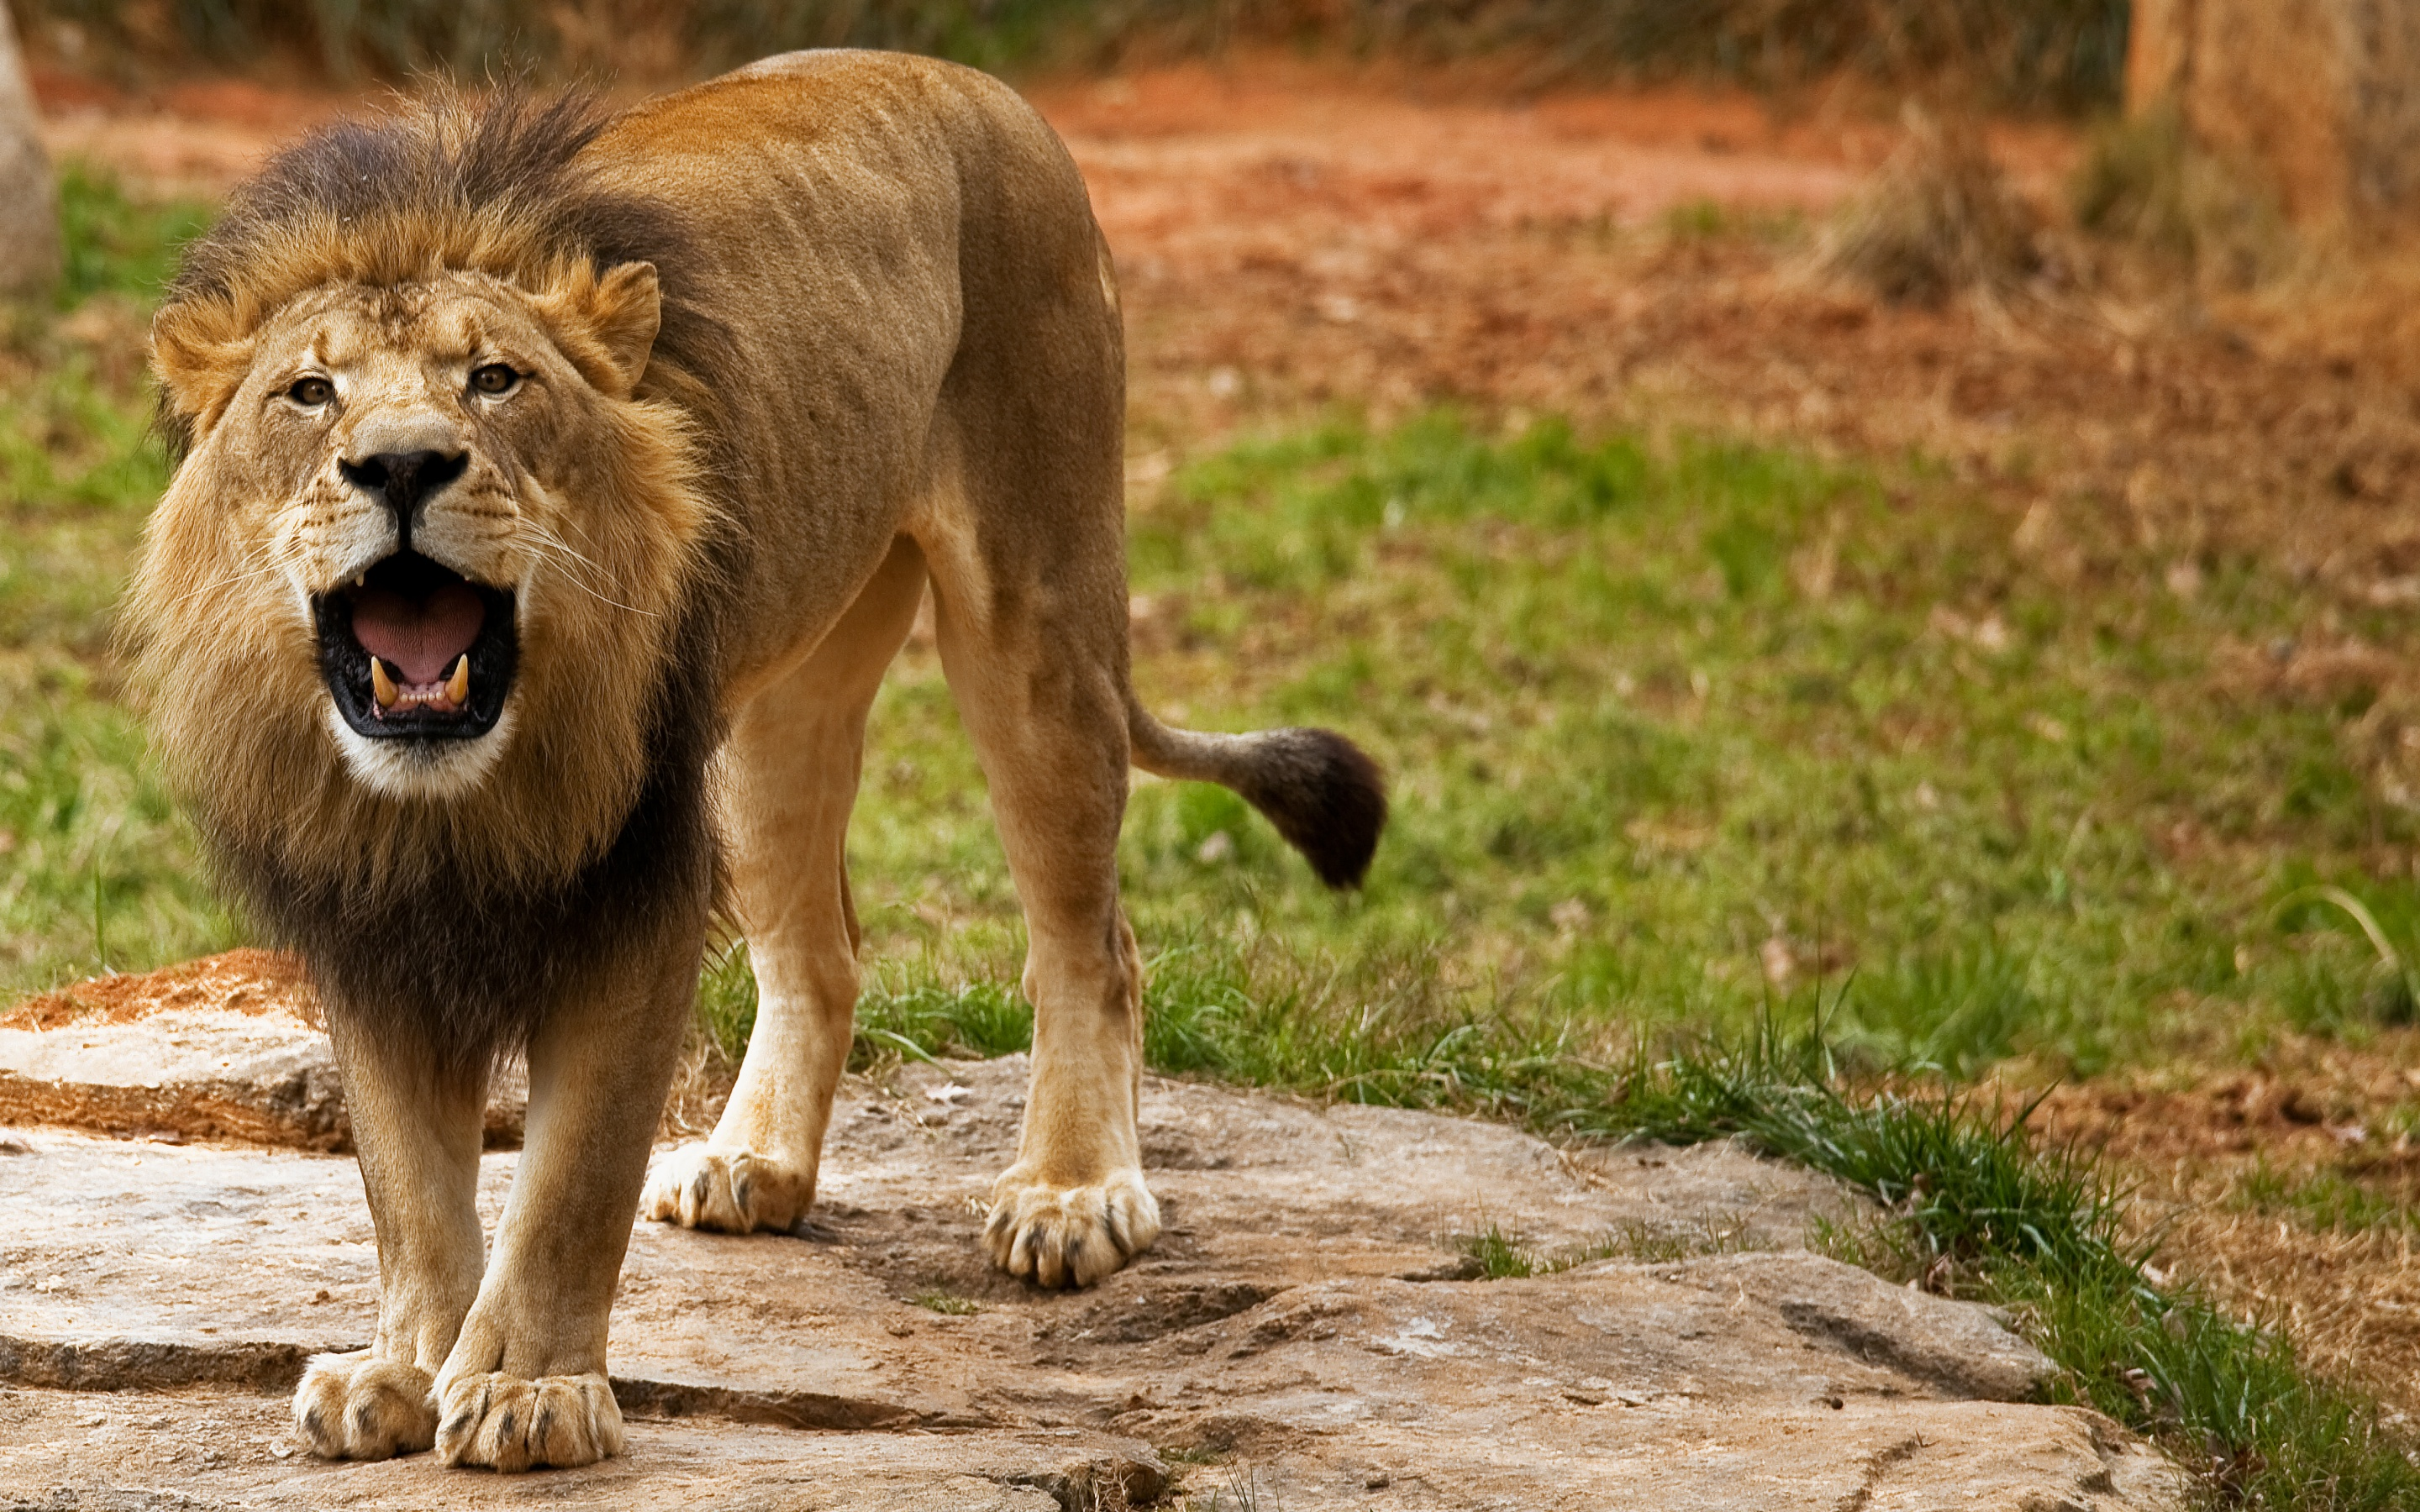 Angry Lion Wallpapers 2880x1800 2212384